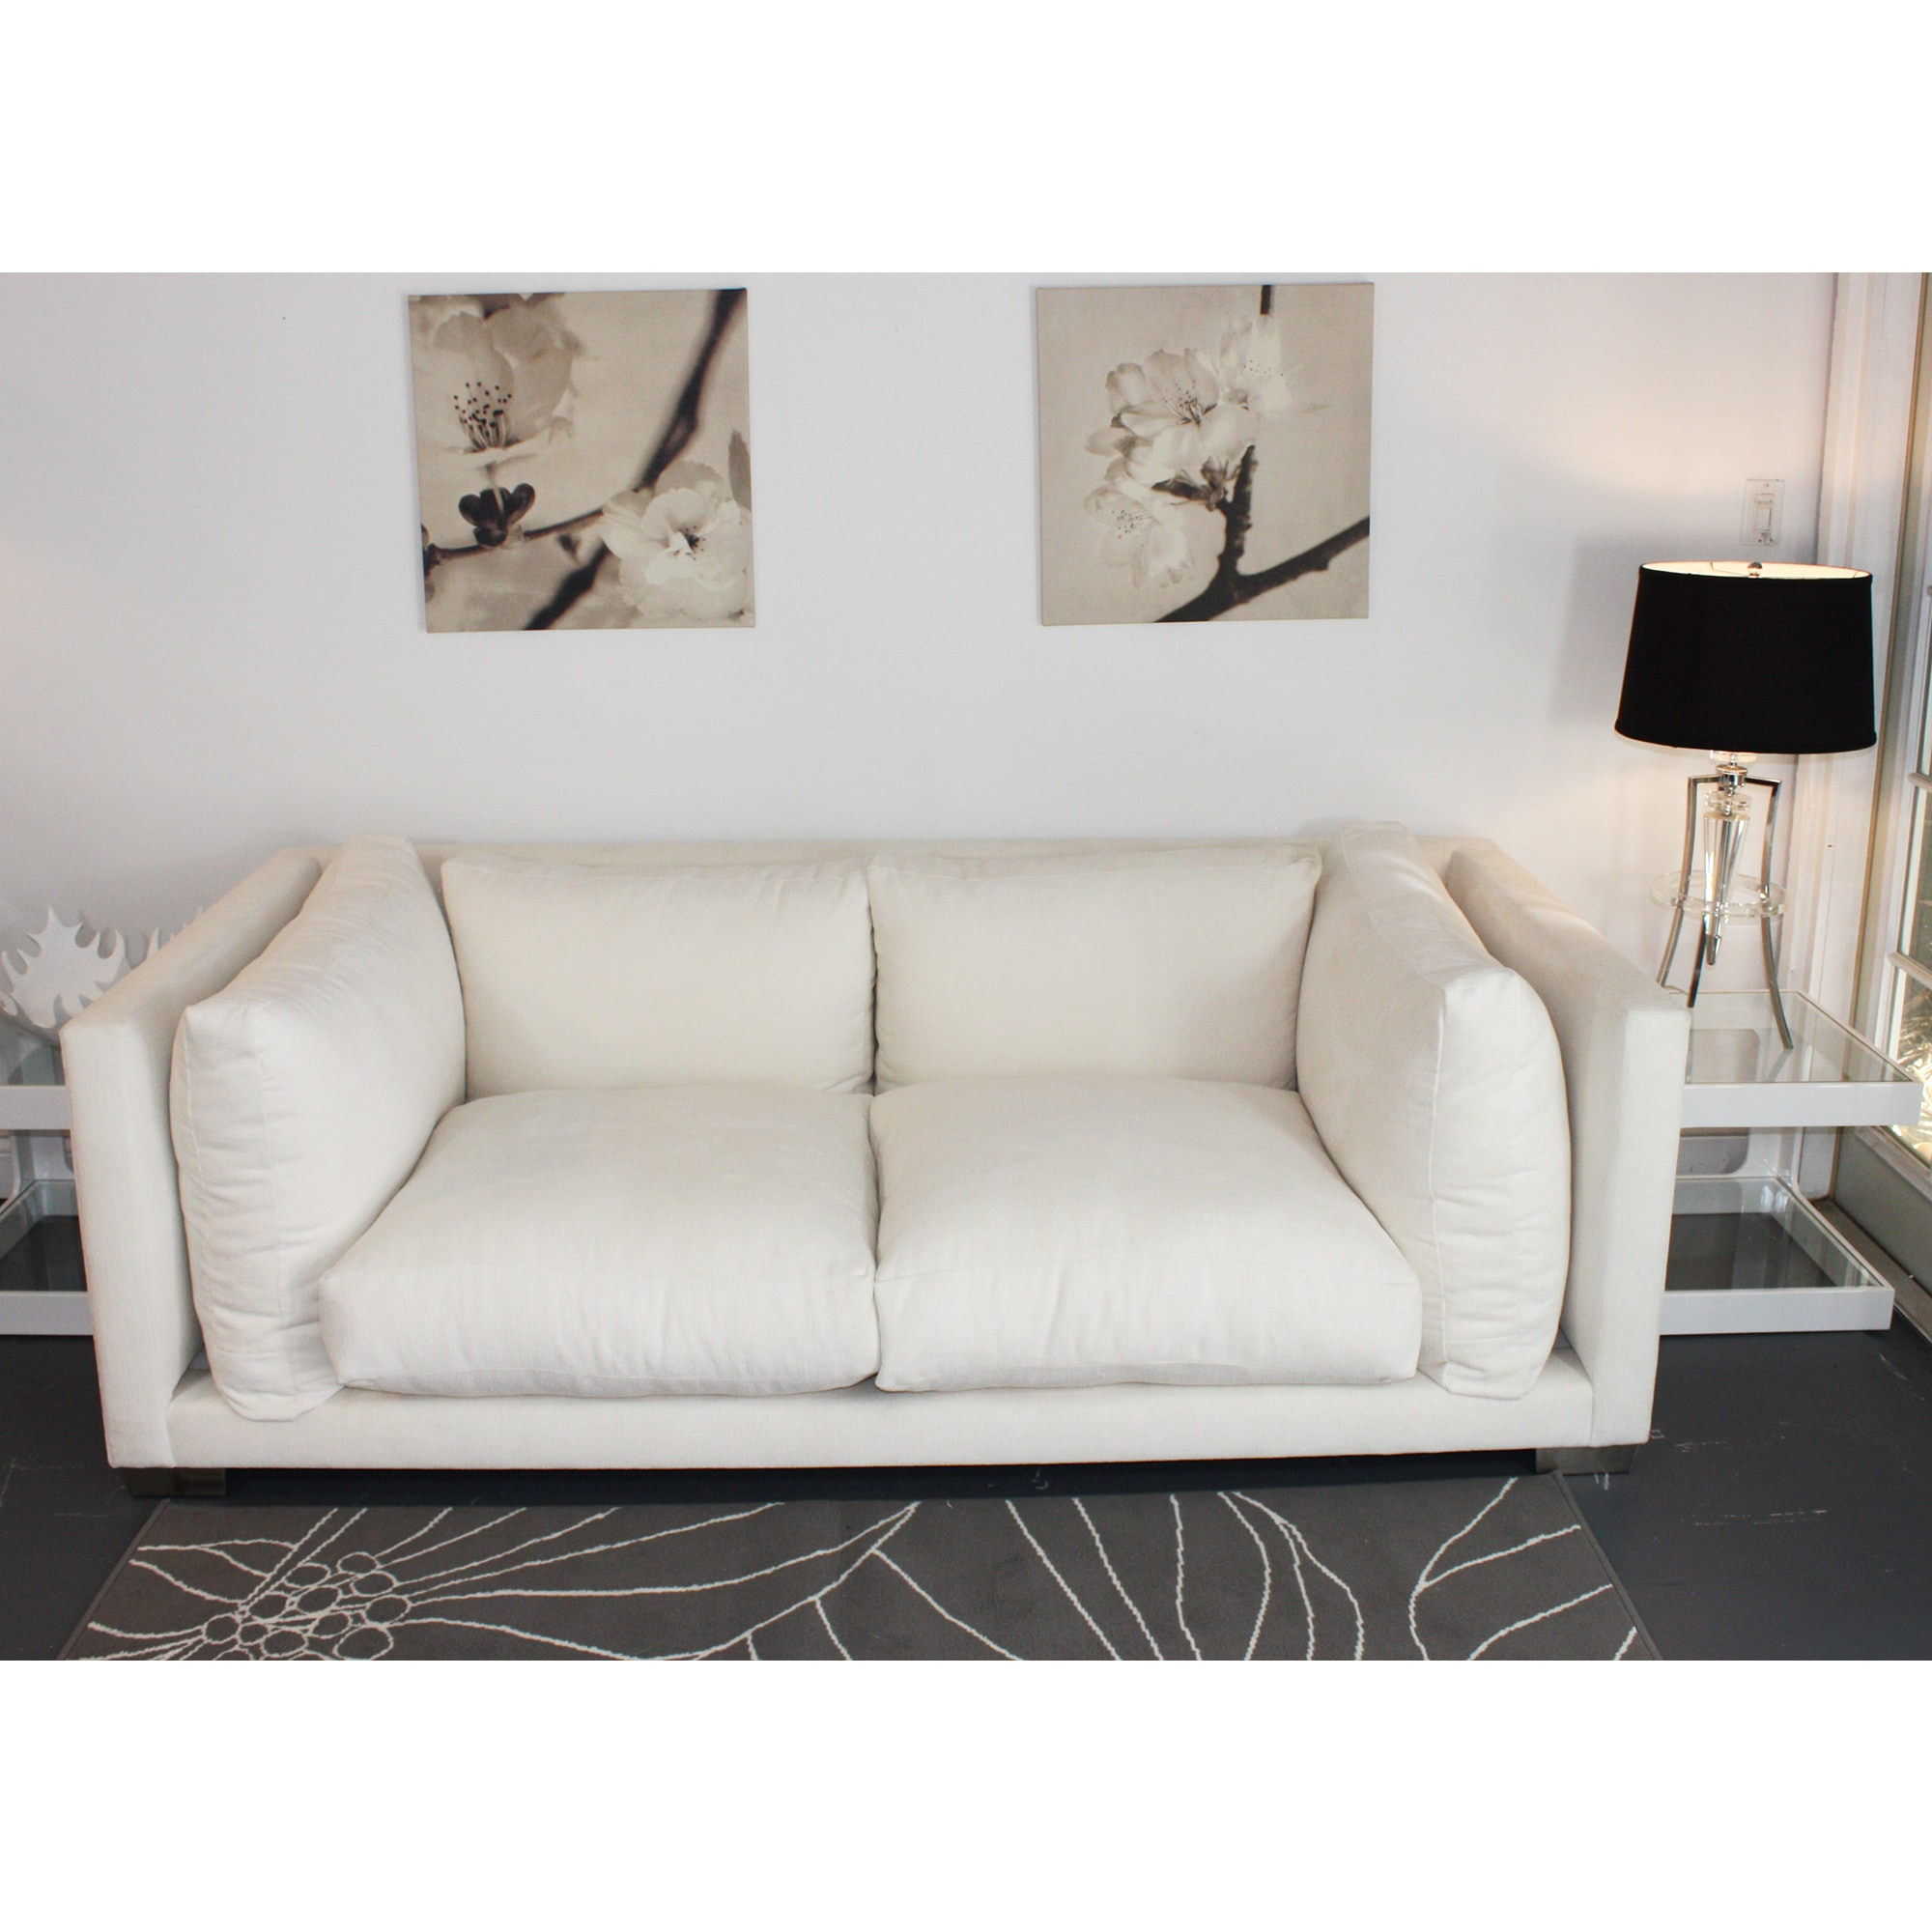 Shop Modern White U0027Nuvolau0027 7 Foot Sofa By Decenni Custom Furniture   Free  Shipping Today   Overstock.com   8338676